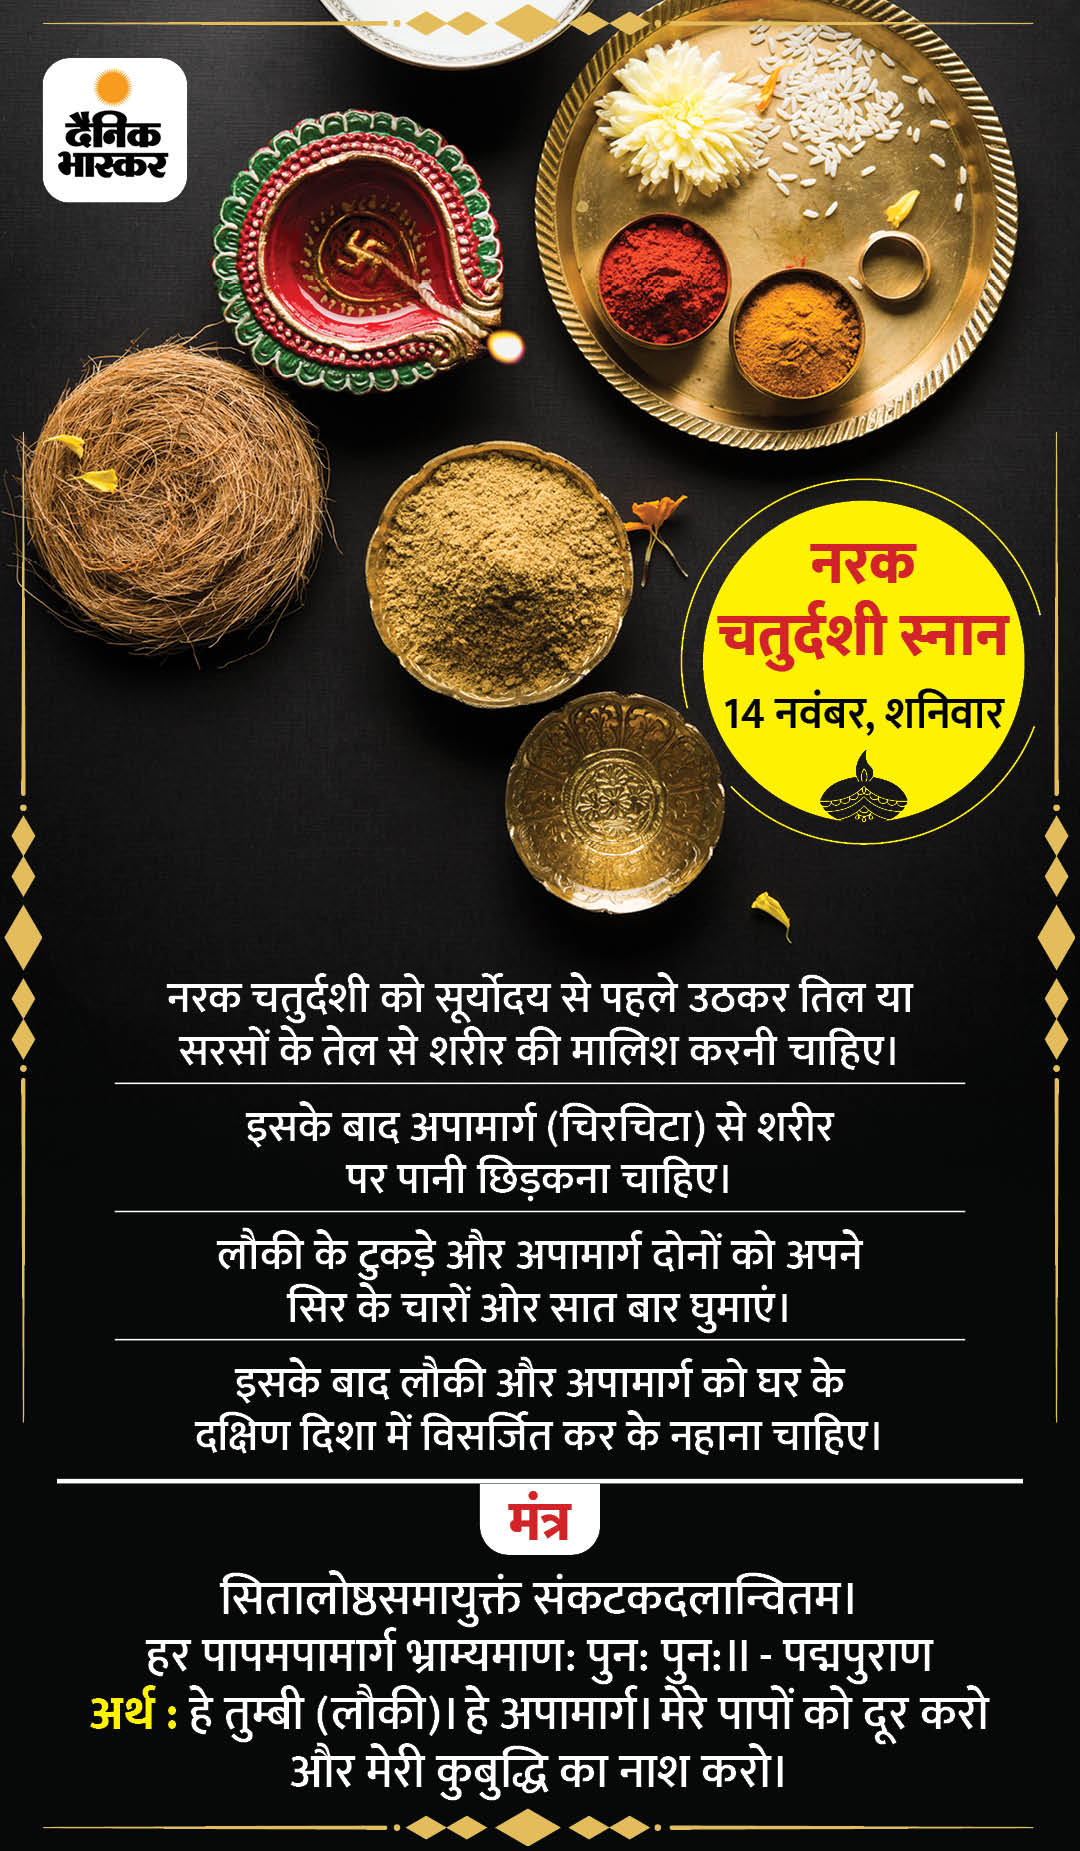 According to Bhavishpuran, Chaturdashi of Krishnapaksha of Kartik month should be massaged with sesame oil before bathing. Lakshmi ji in sesame oil and Ganga ji in water have been considered. This increases the appearance and health. It is written in Padmapurana that one who takes a bath before sunrise does not go to Yamlok. Therefore, one should take a bath on this day before the sun rises.